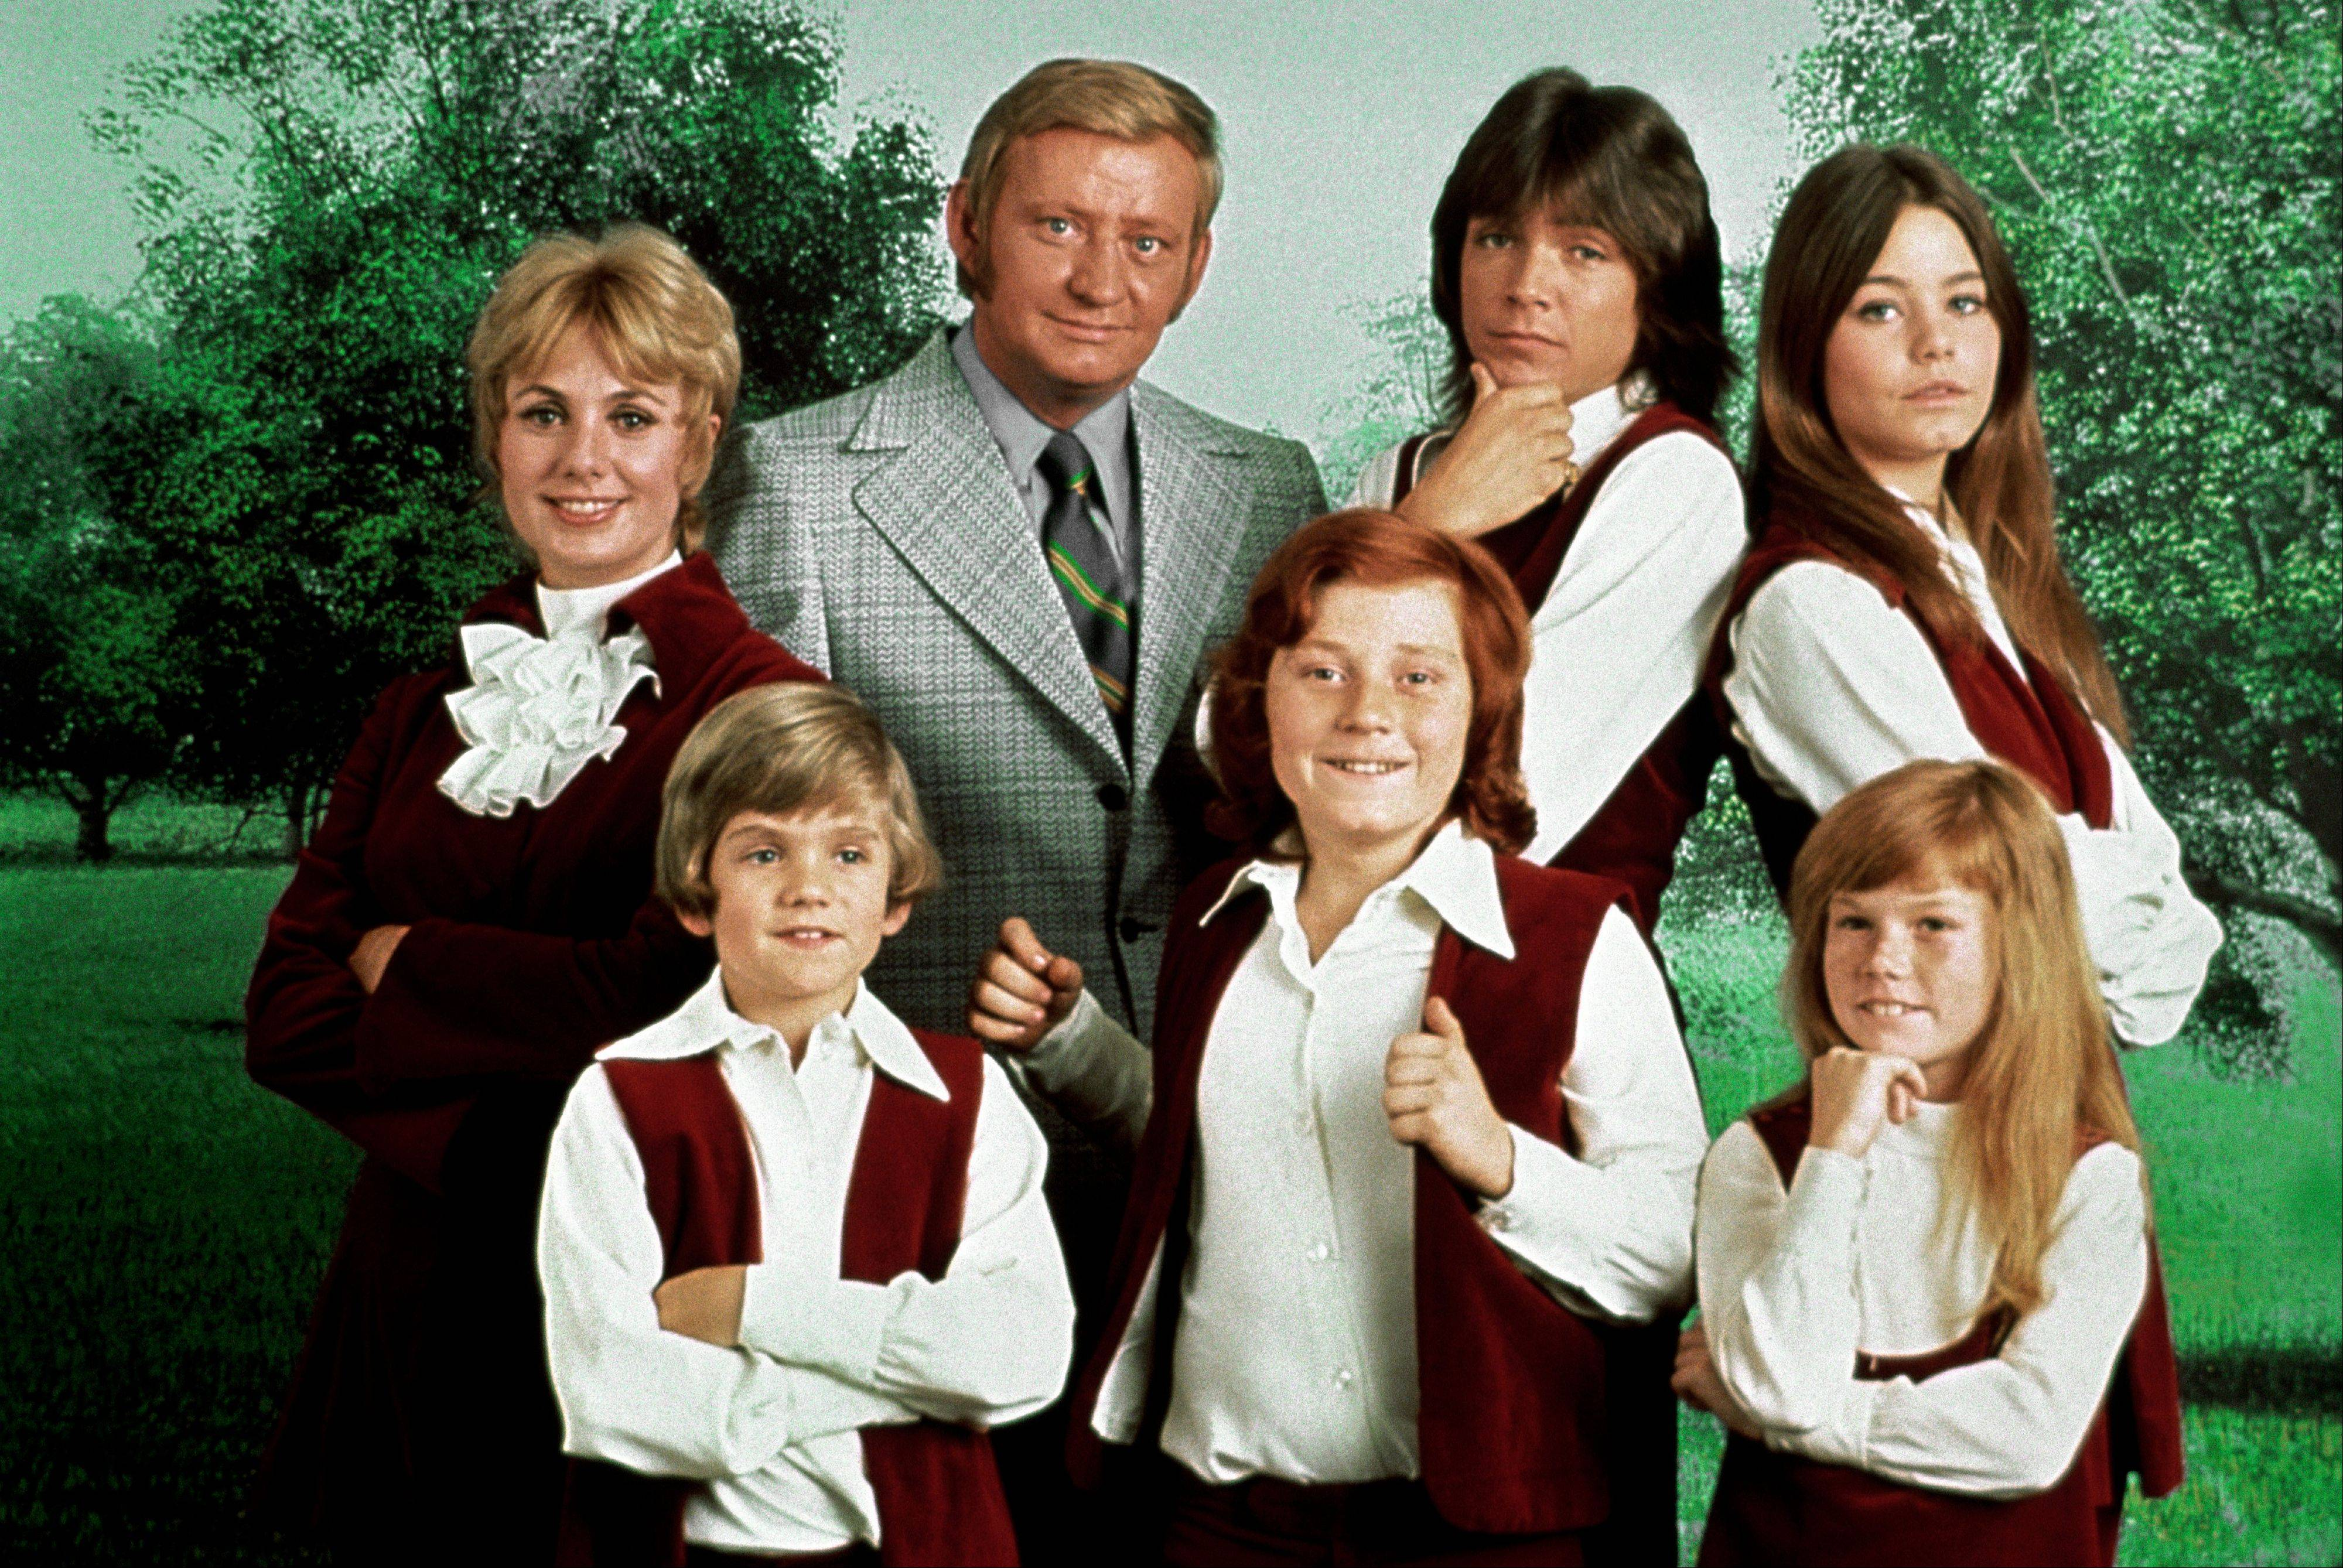 This 1970 photo released by courtesy of Sony Pictures Television shows, back row, from left, cast members, Shirley Jones, Dave Madden, David Cassidy, Susan Dey, and front row, from left, Brian Forster, Danny Bonaduce and Suzanne Crough of the television series, �The Partridge Family.� Madden, who played the child-hating agent on the hit 1970s sitcom, died in Florida on Thursday at age 82.